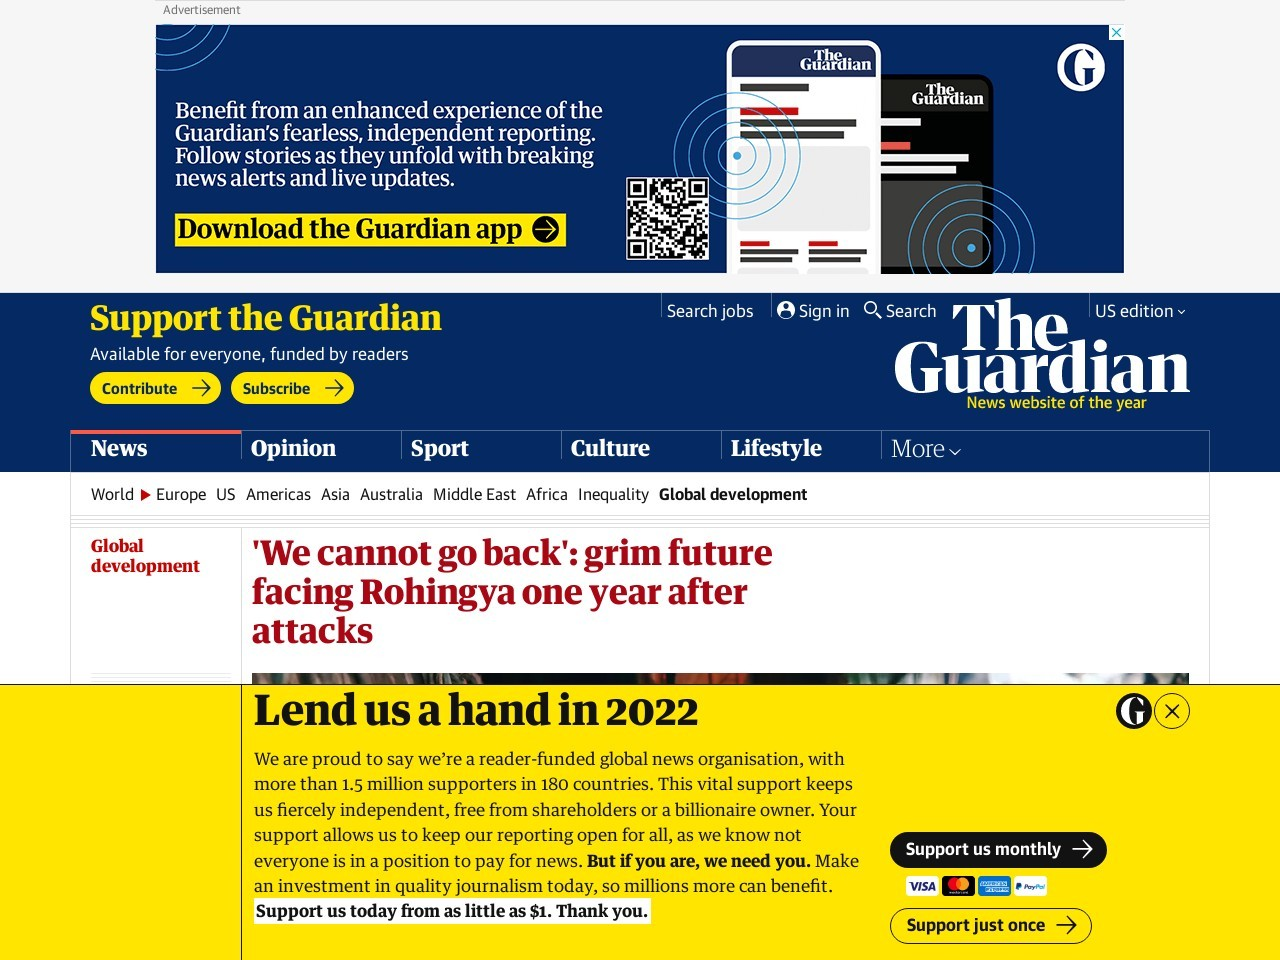 'We cannot go back': grim future facing Rohingya one year after attacks